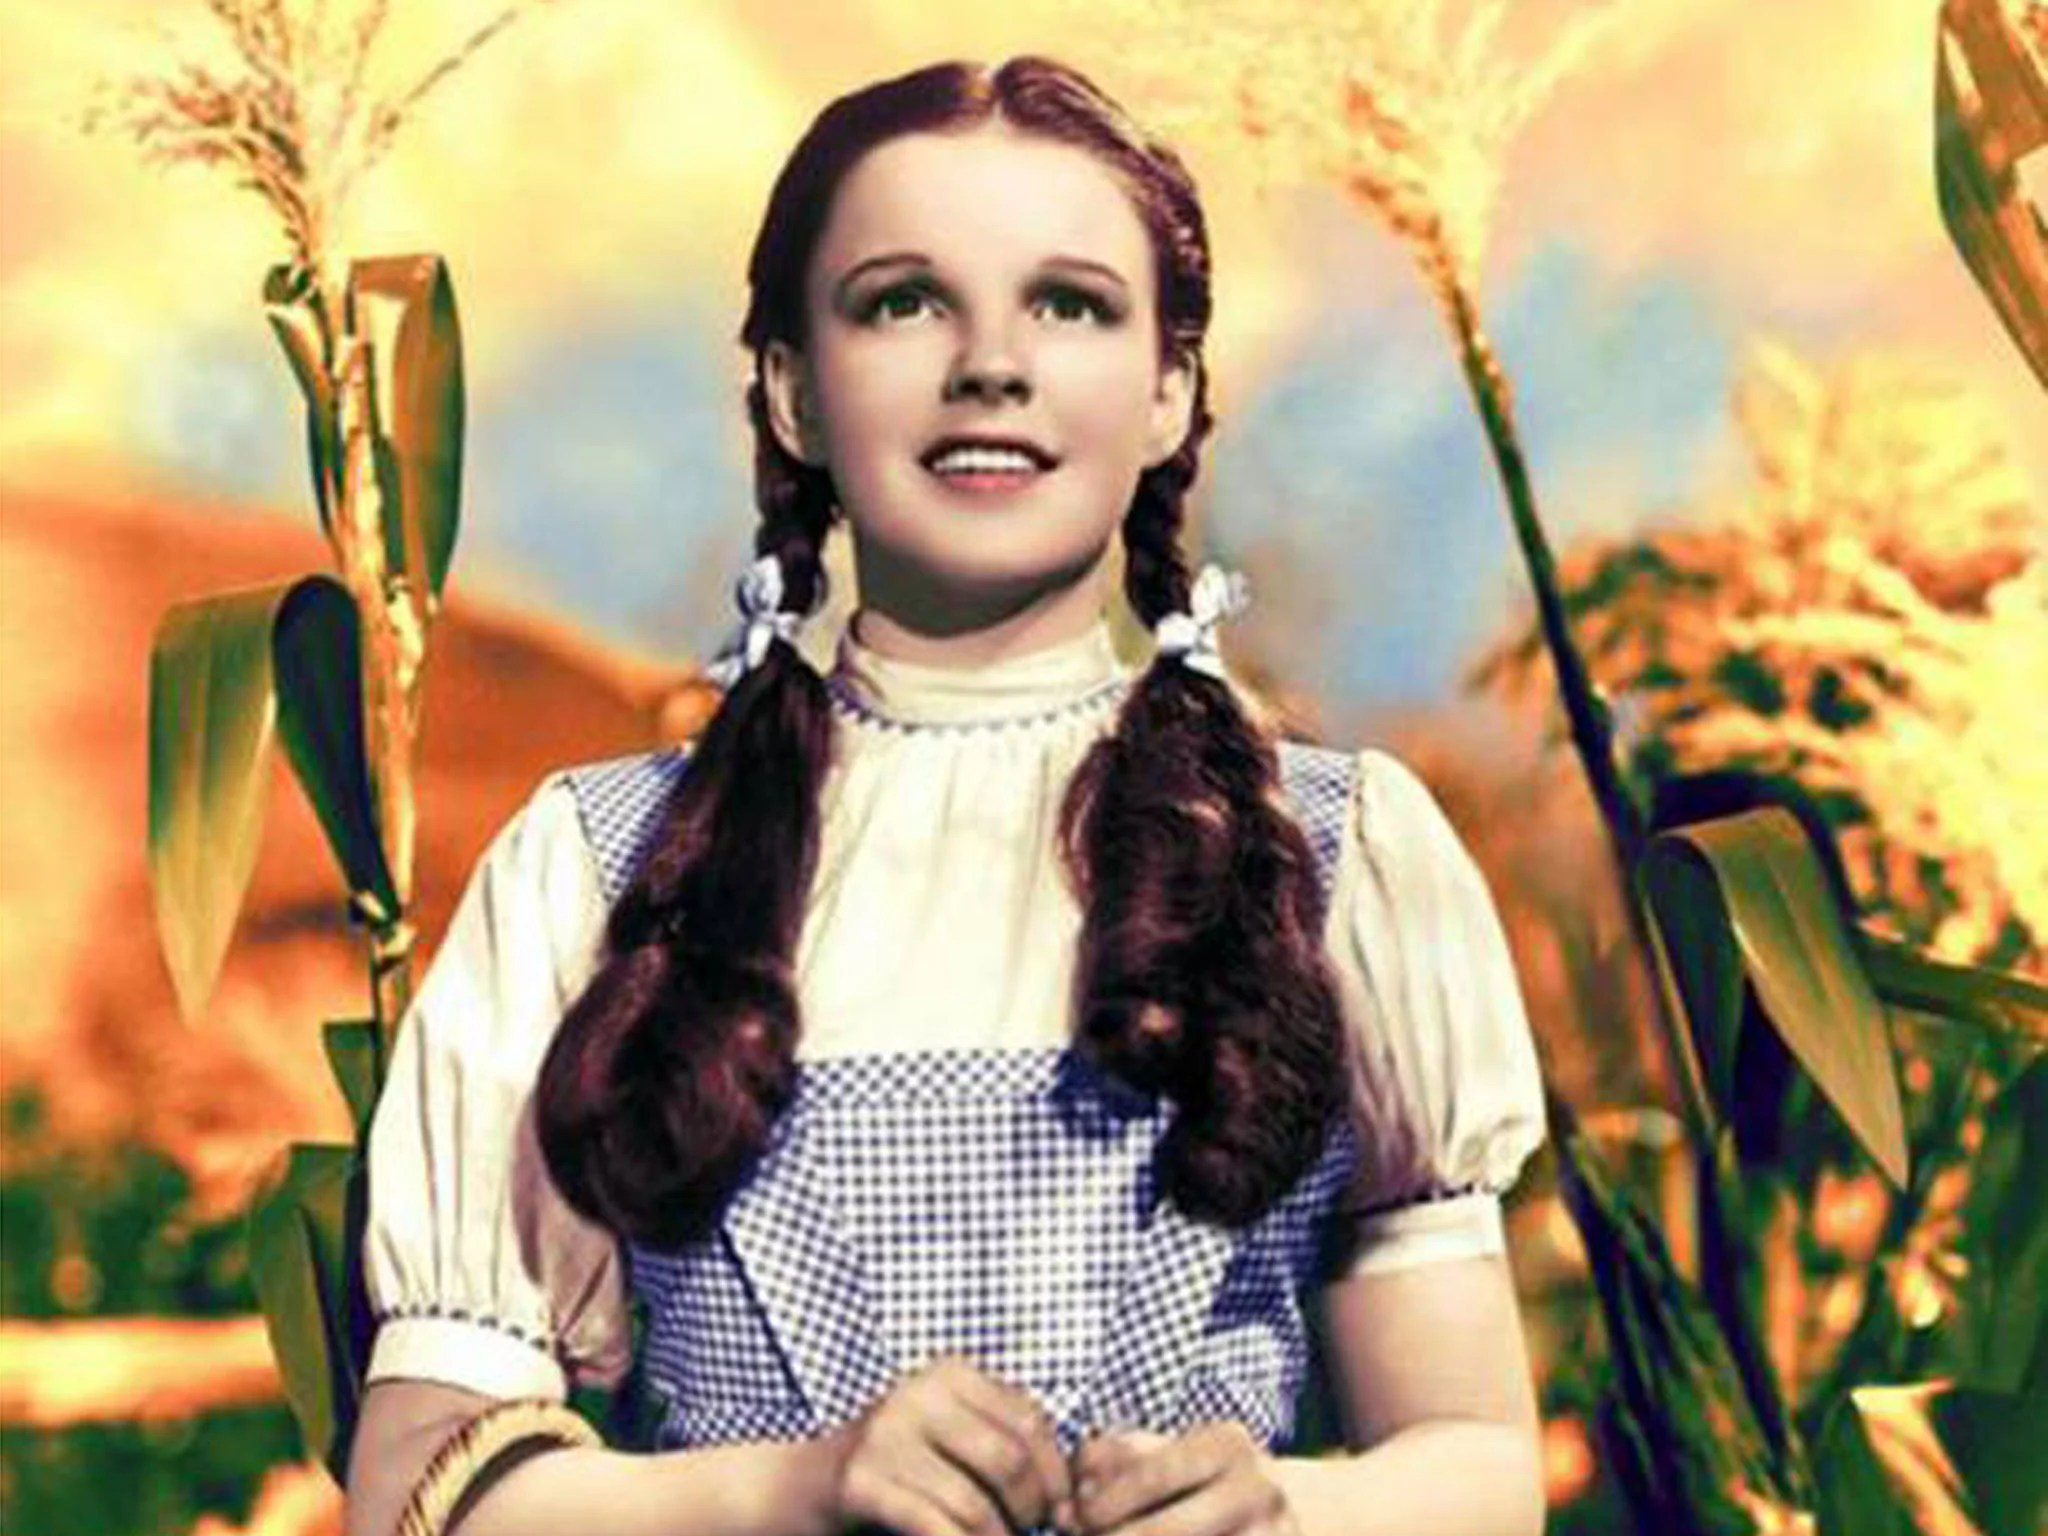 Judy Garland's Dress From The Wizard Of Oz Expected To